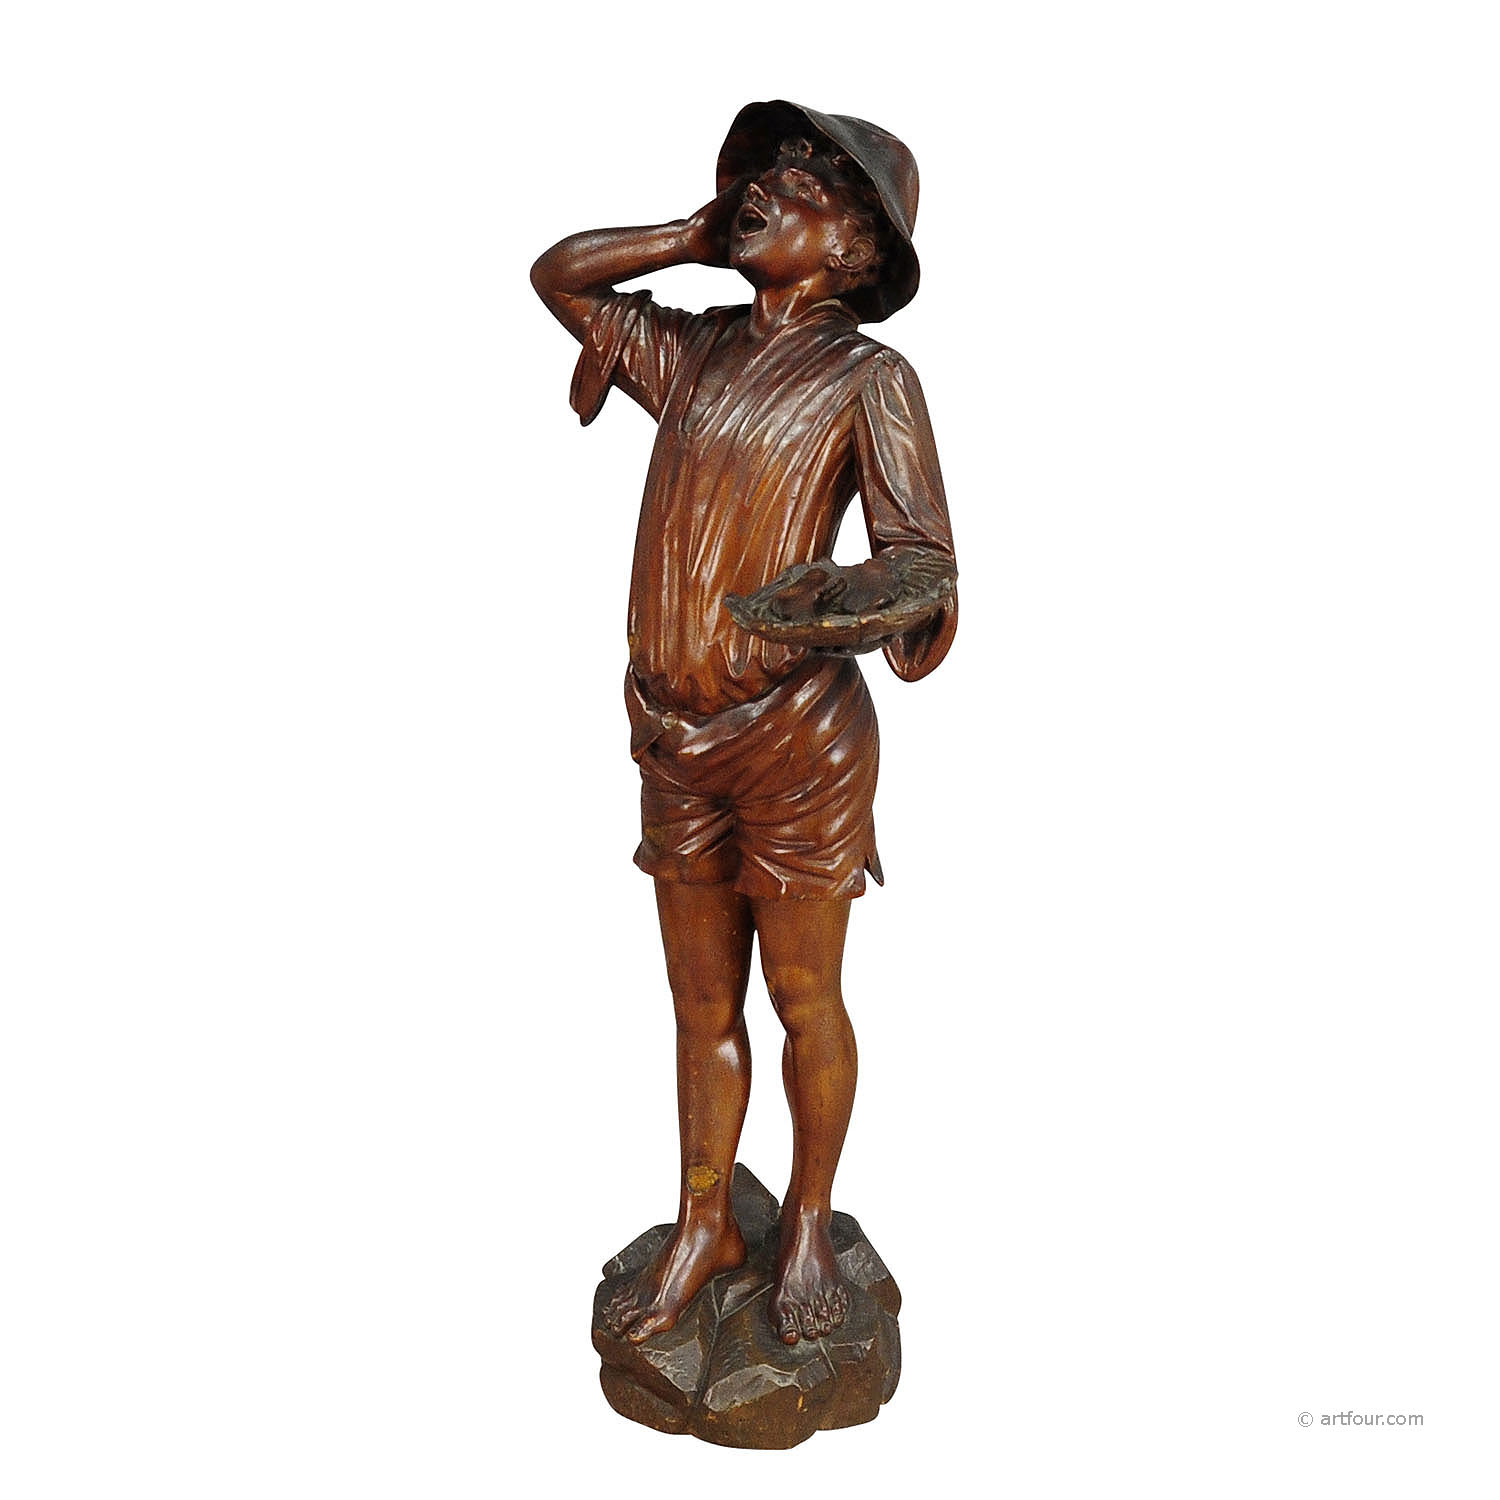 For sale an antique wooden carved statue of a fisher